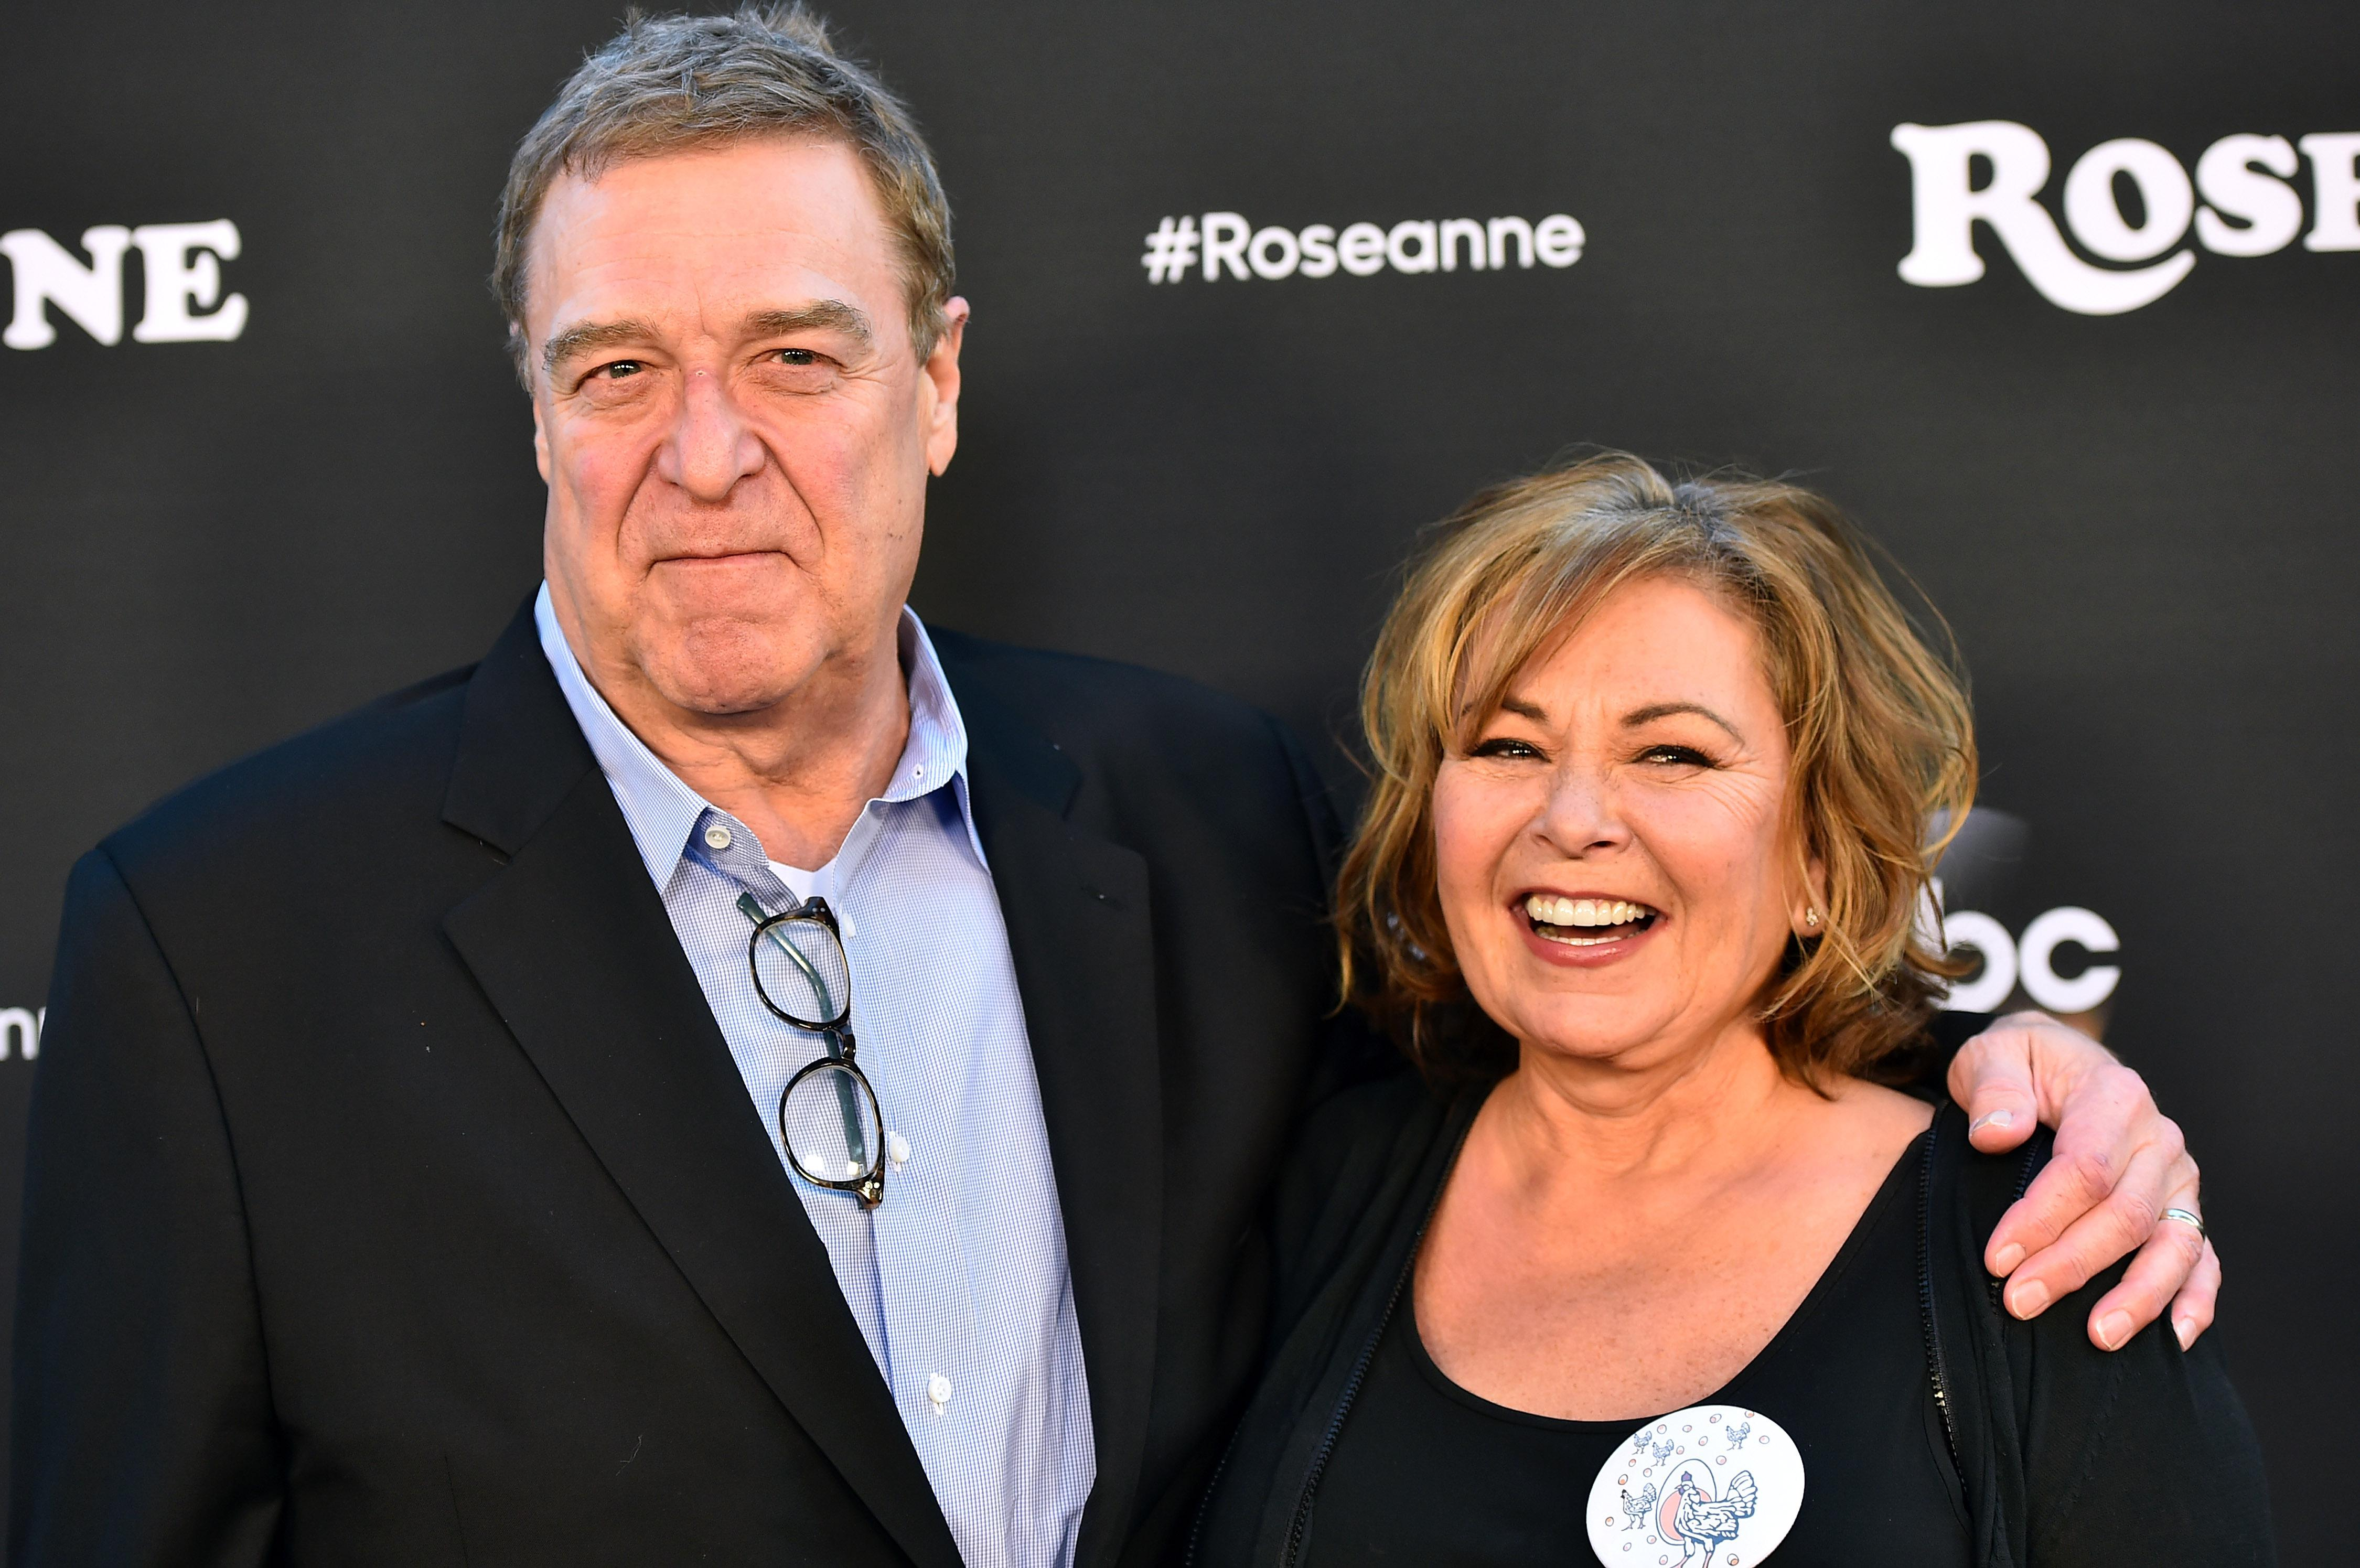 John Goodman and Roseanne Barr in front of a black background with #Roseanne printed on it.